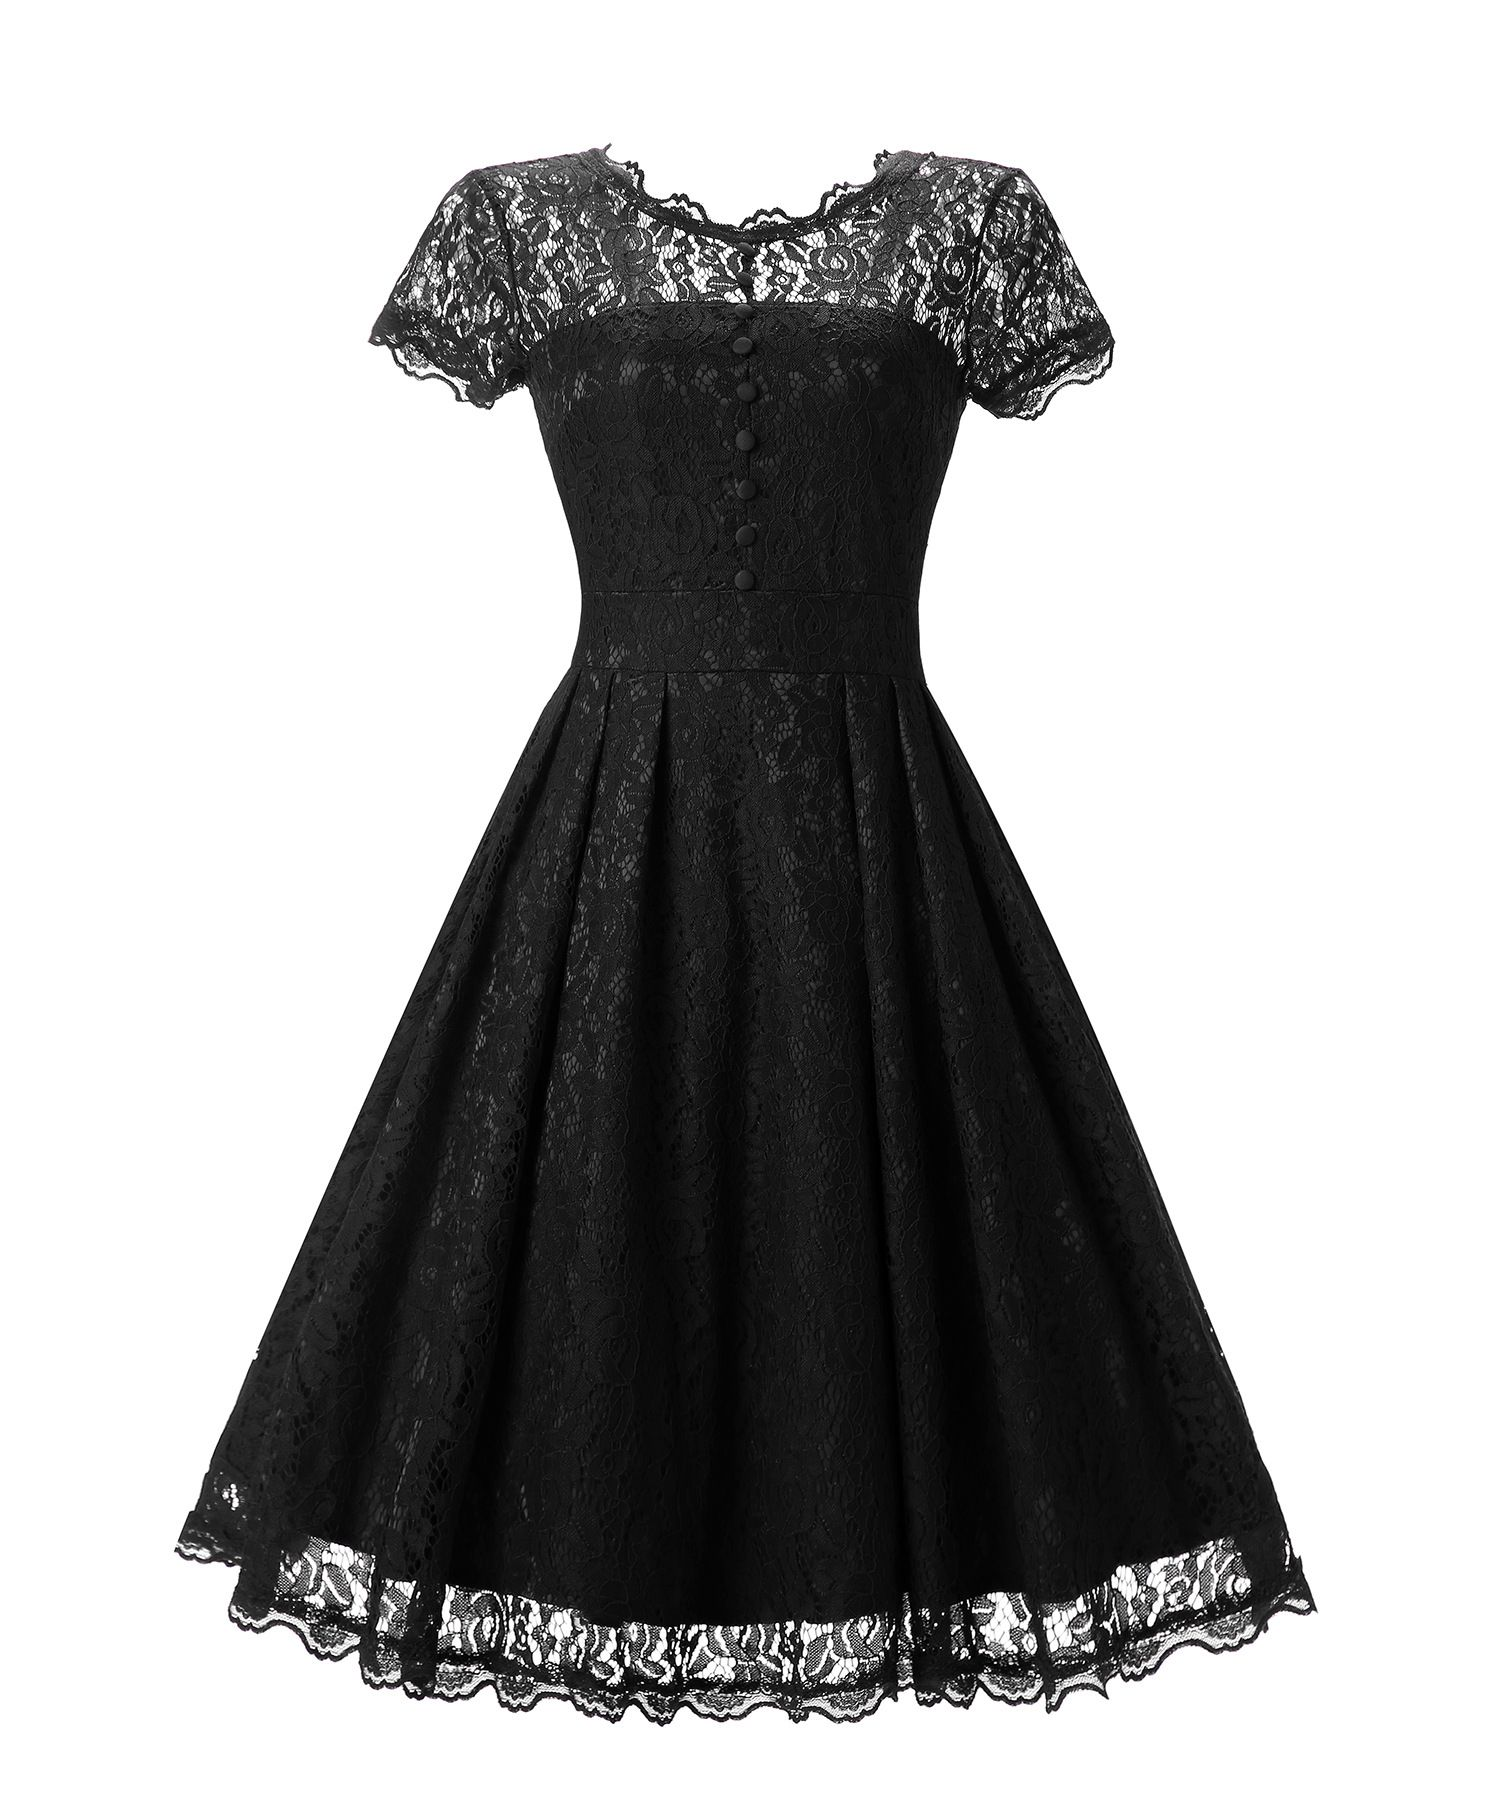 1364801f8b Women s Vintage Lace Overlay Double Layer Knee Length Skater Swing Dresses